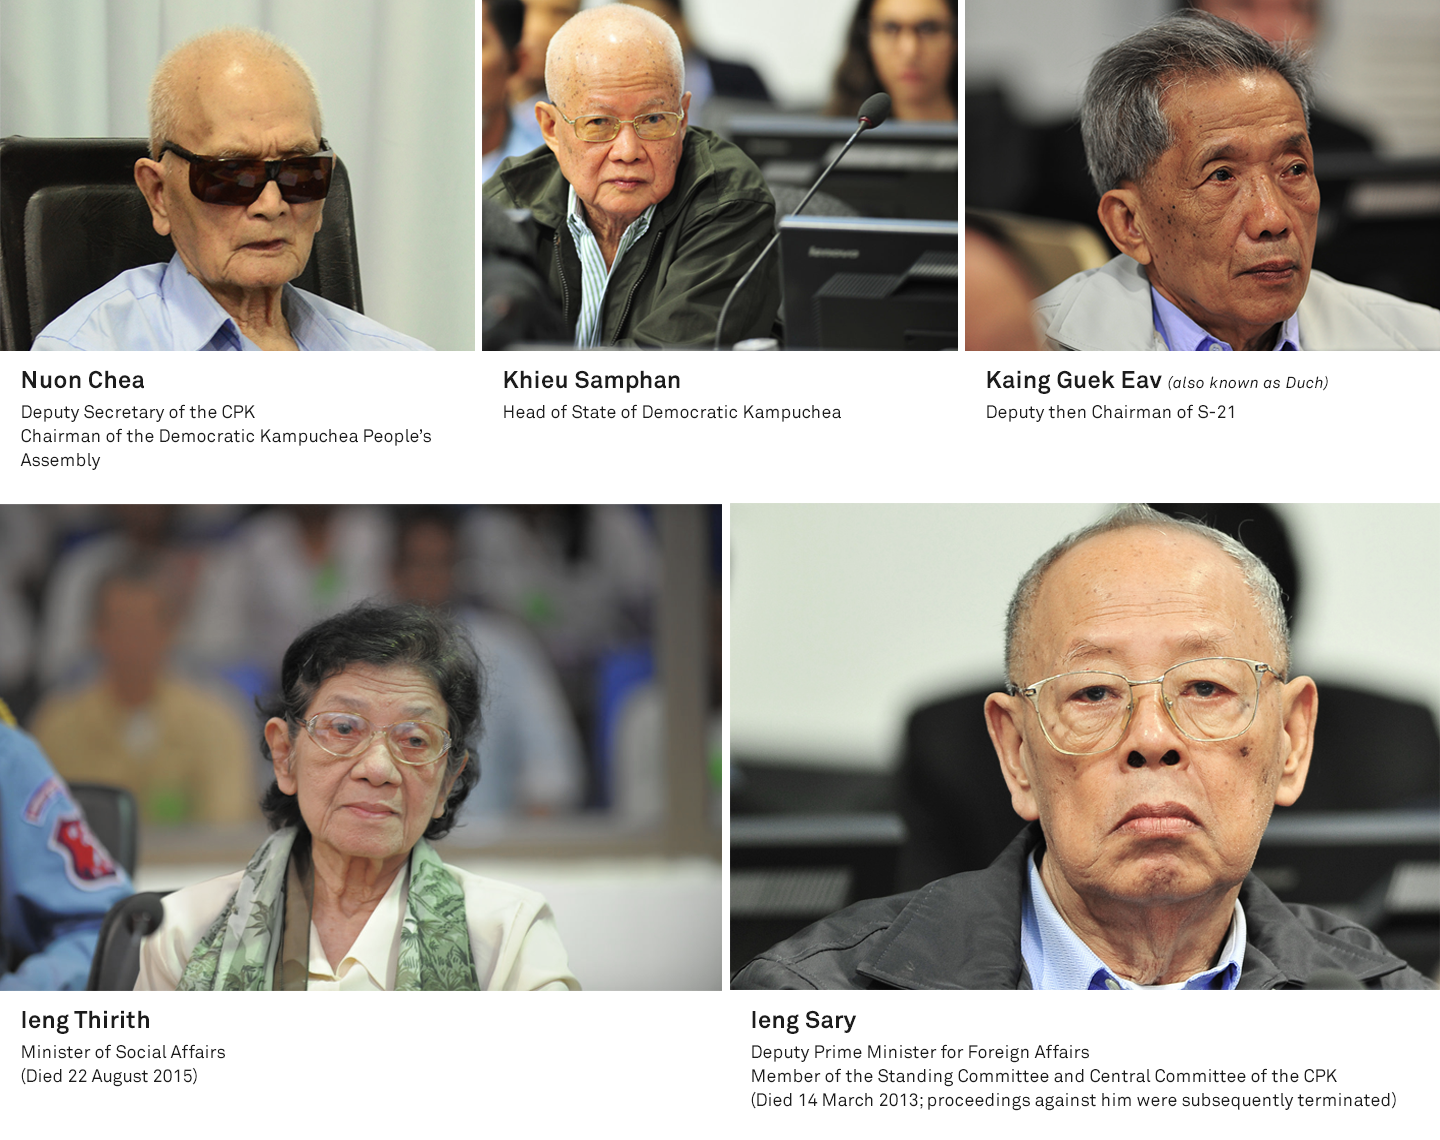 The senior leaders of Democratic Kampuchea, including Nuon Chea, Khieu Samphan, leng Sary, leng Thirith, and Duch.